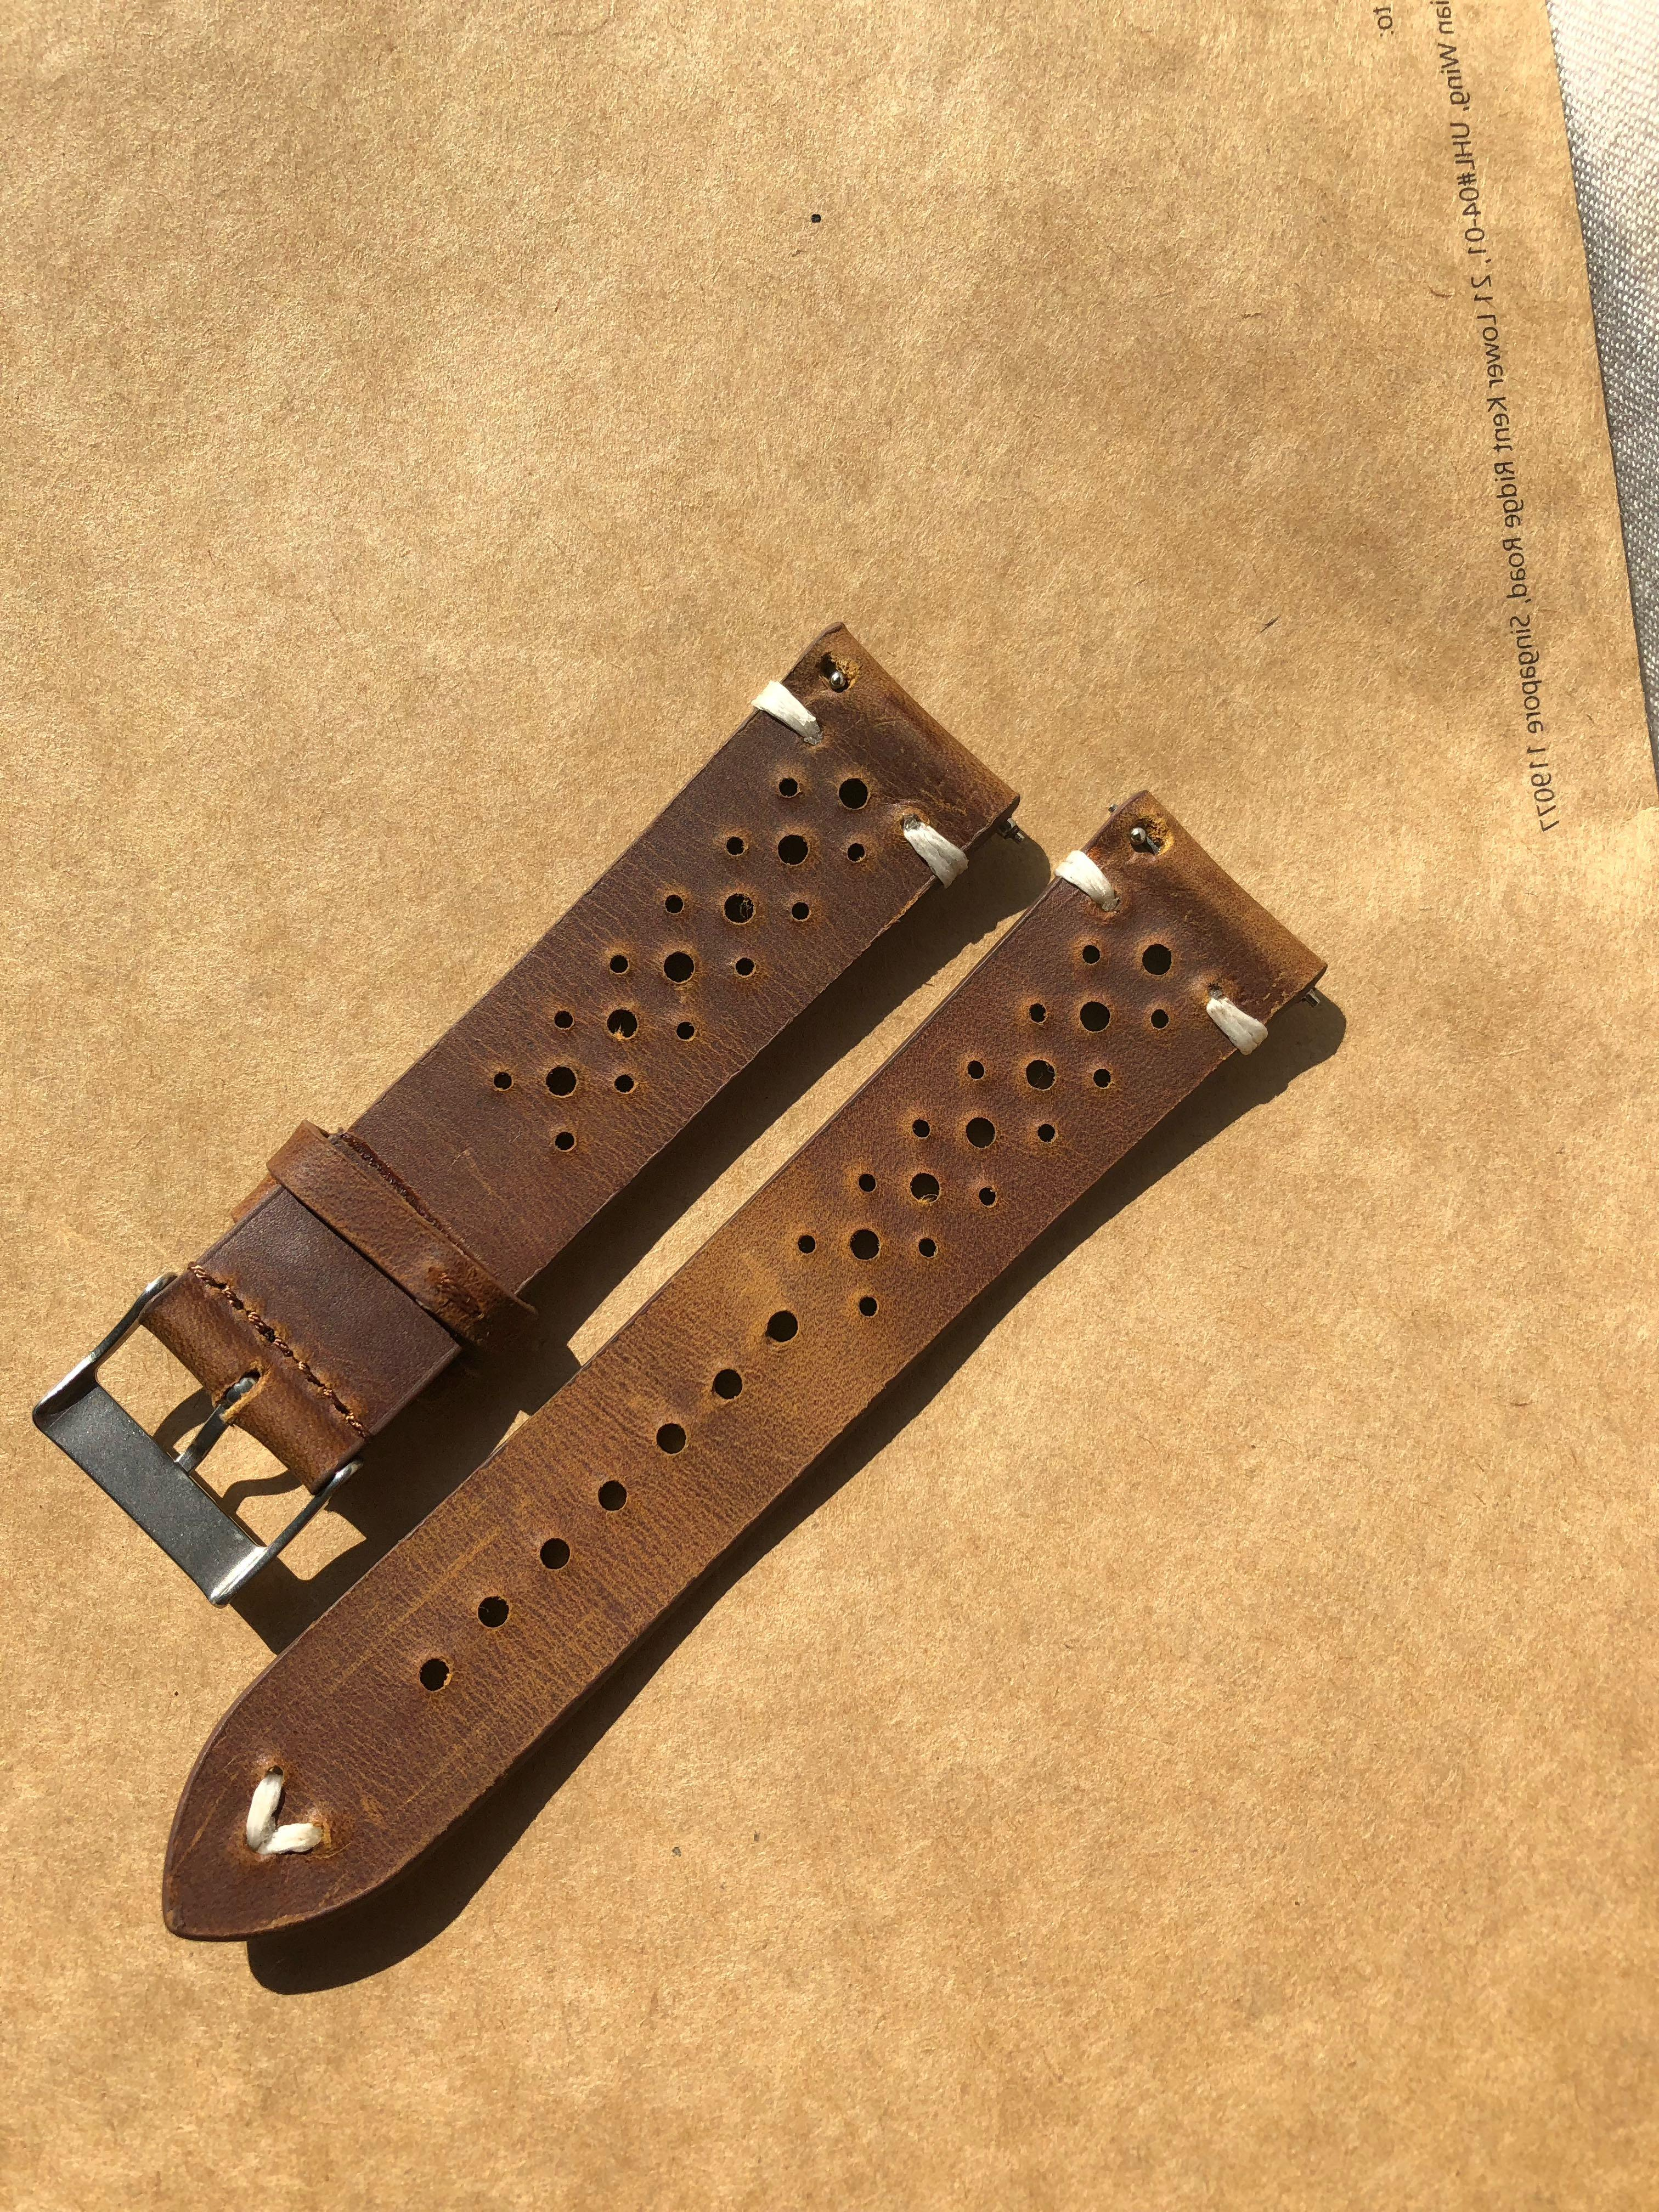 Gorgeous 22mm Rally Leather Strap